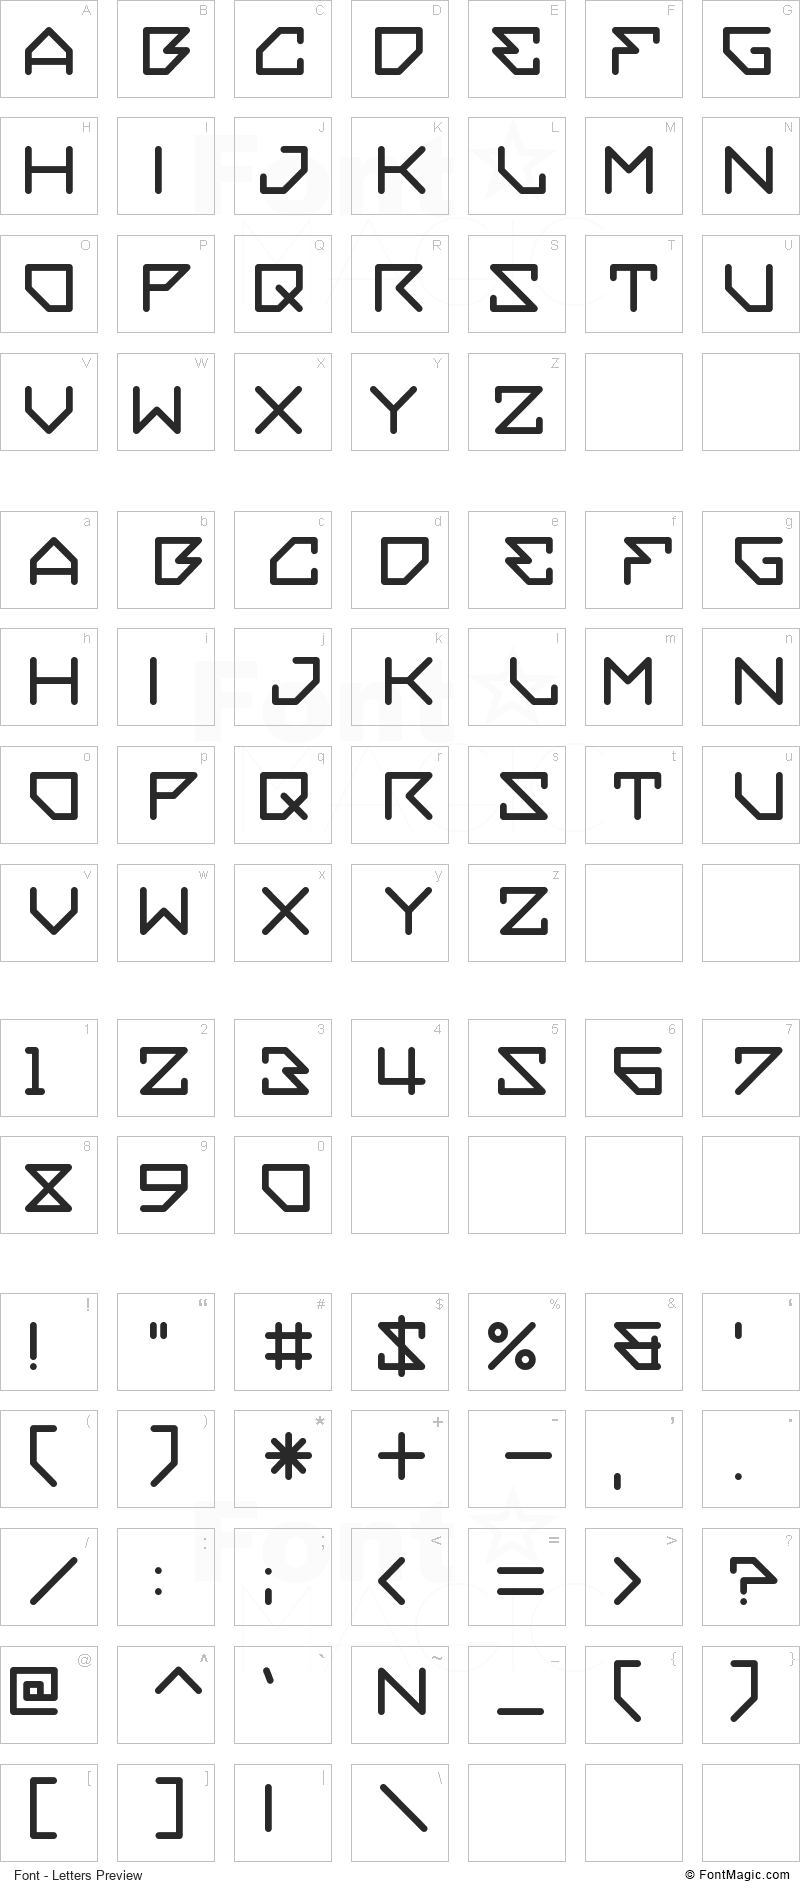 Embezzler Font - All Latters Preview Chart